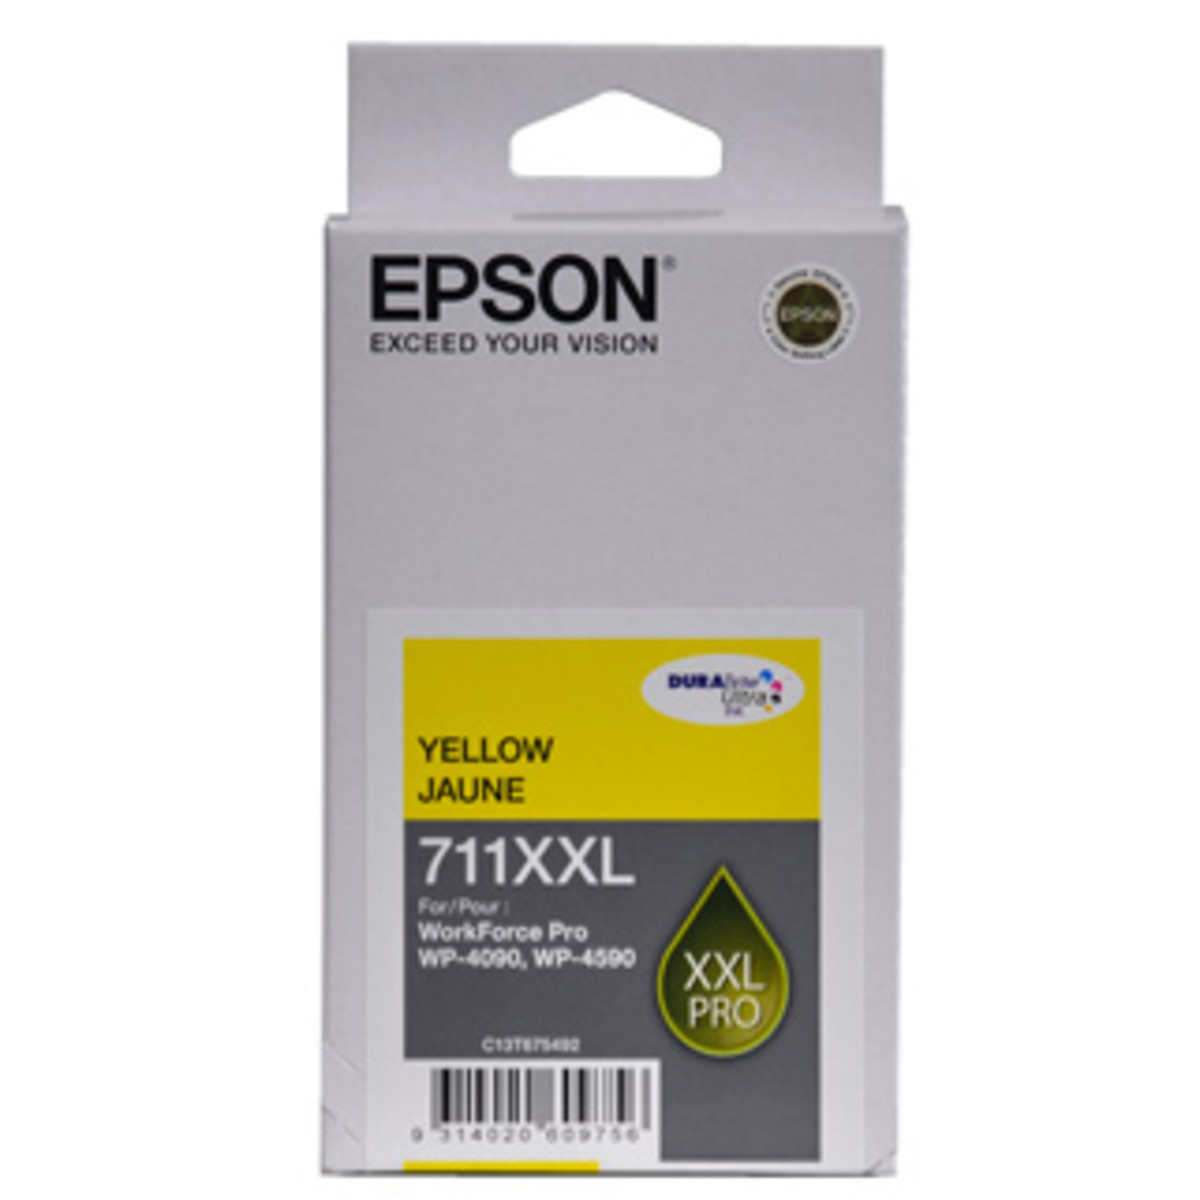 Epson 711XXL Yellow Ink Cartridge - High Yield